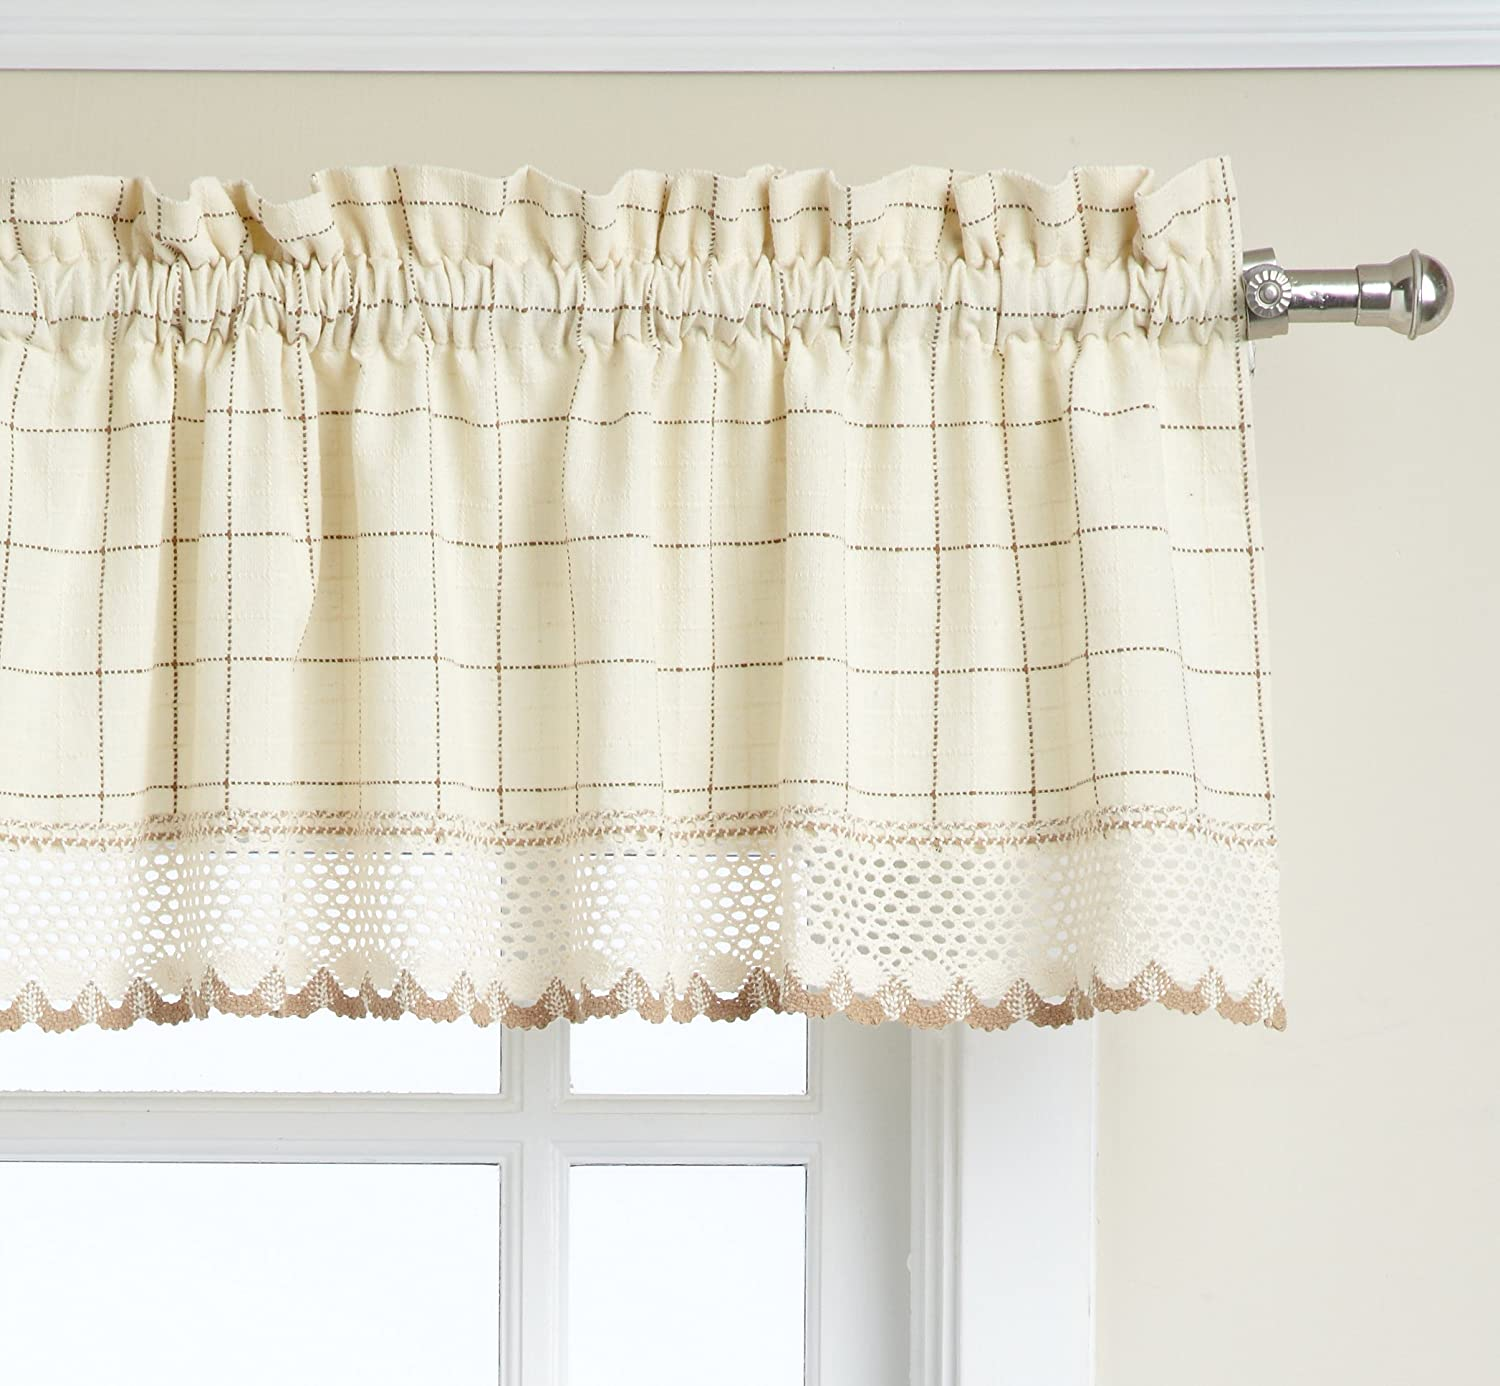 LORRAINE HOME FASHIONS Adirondack Valance, 60 by 12-Inch, Toast